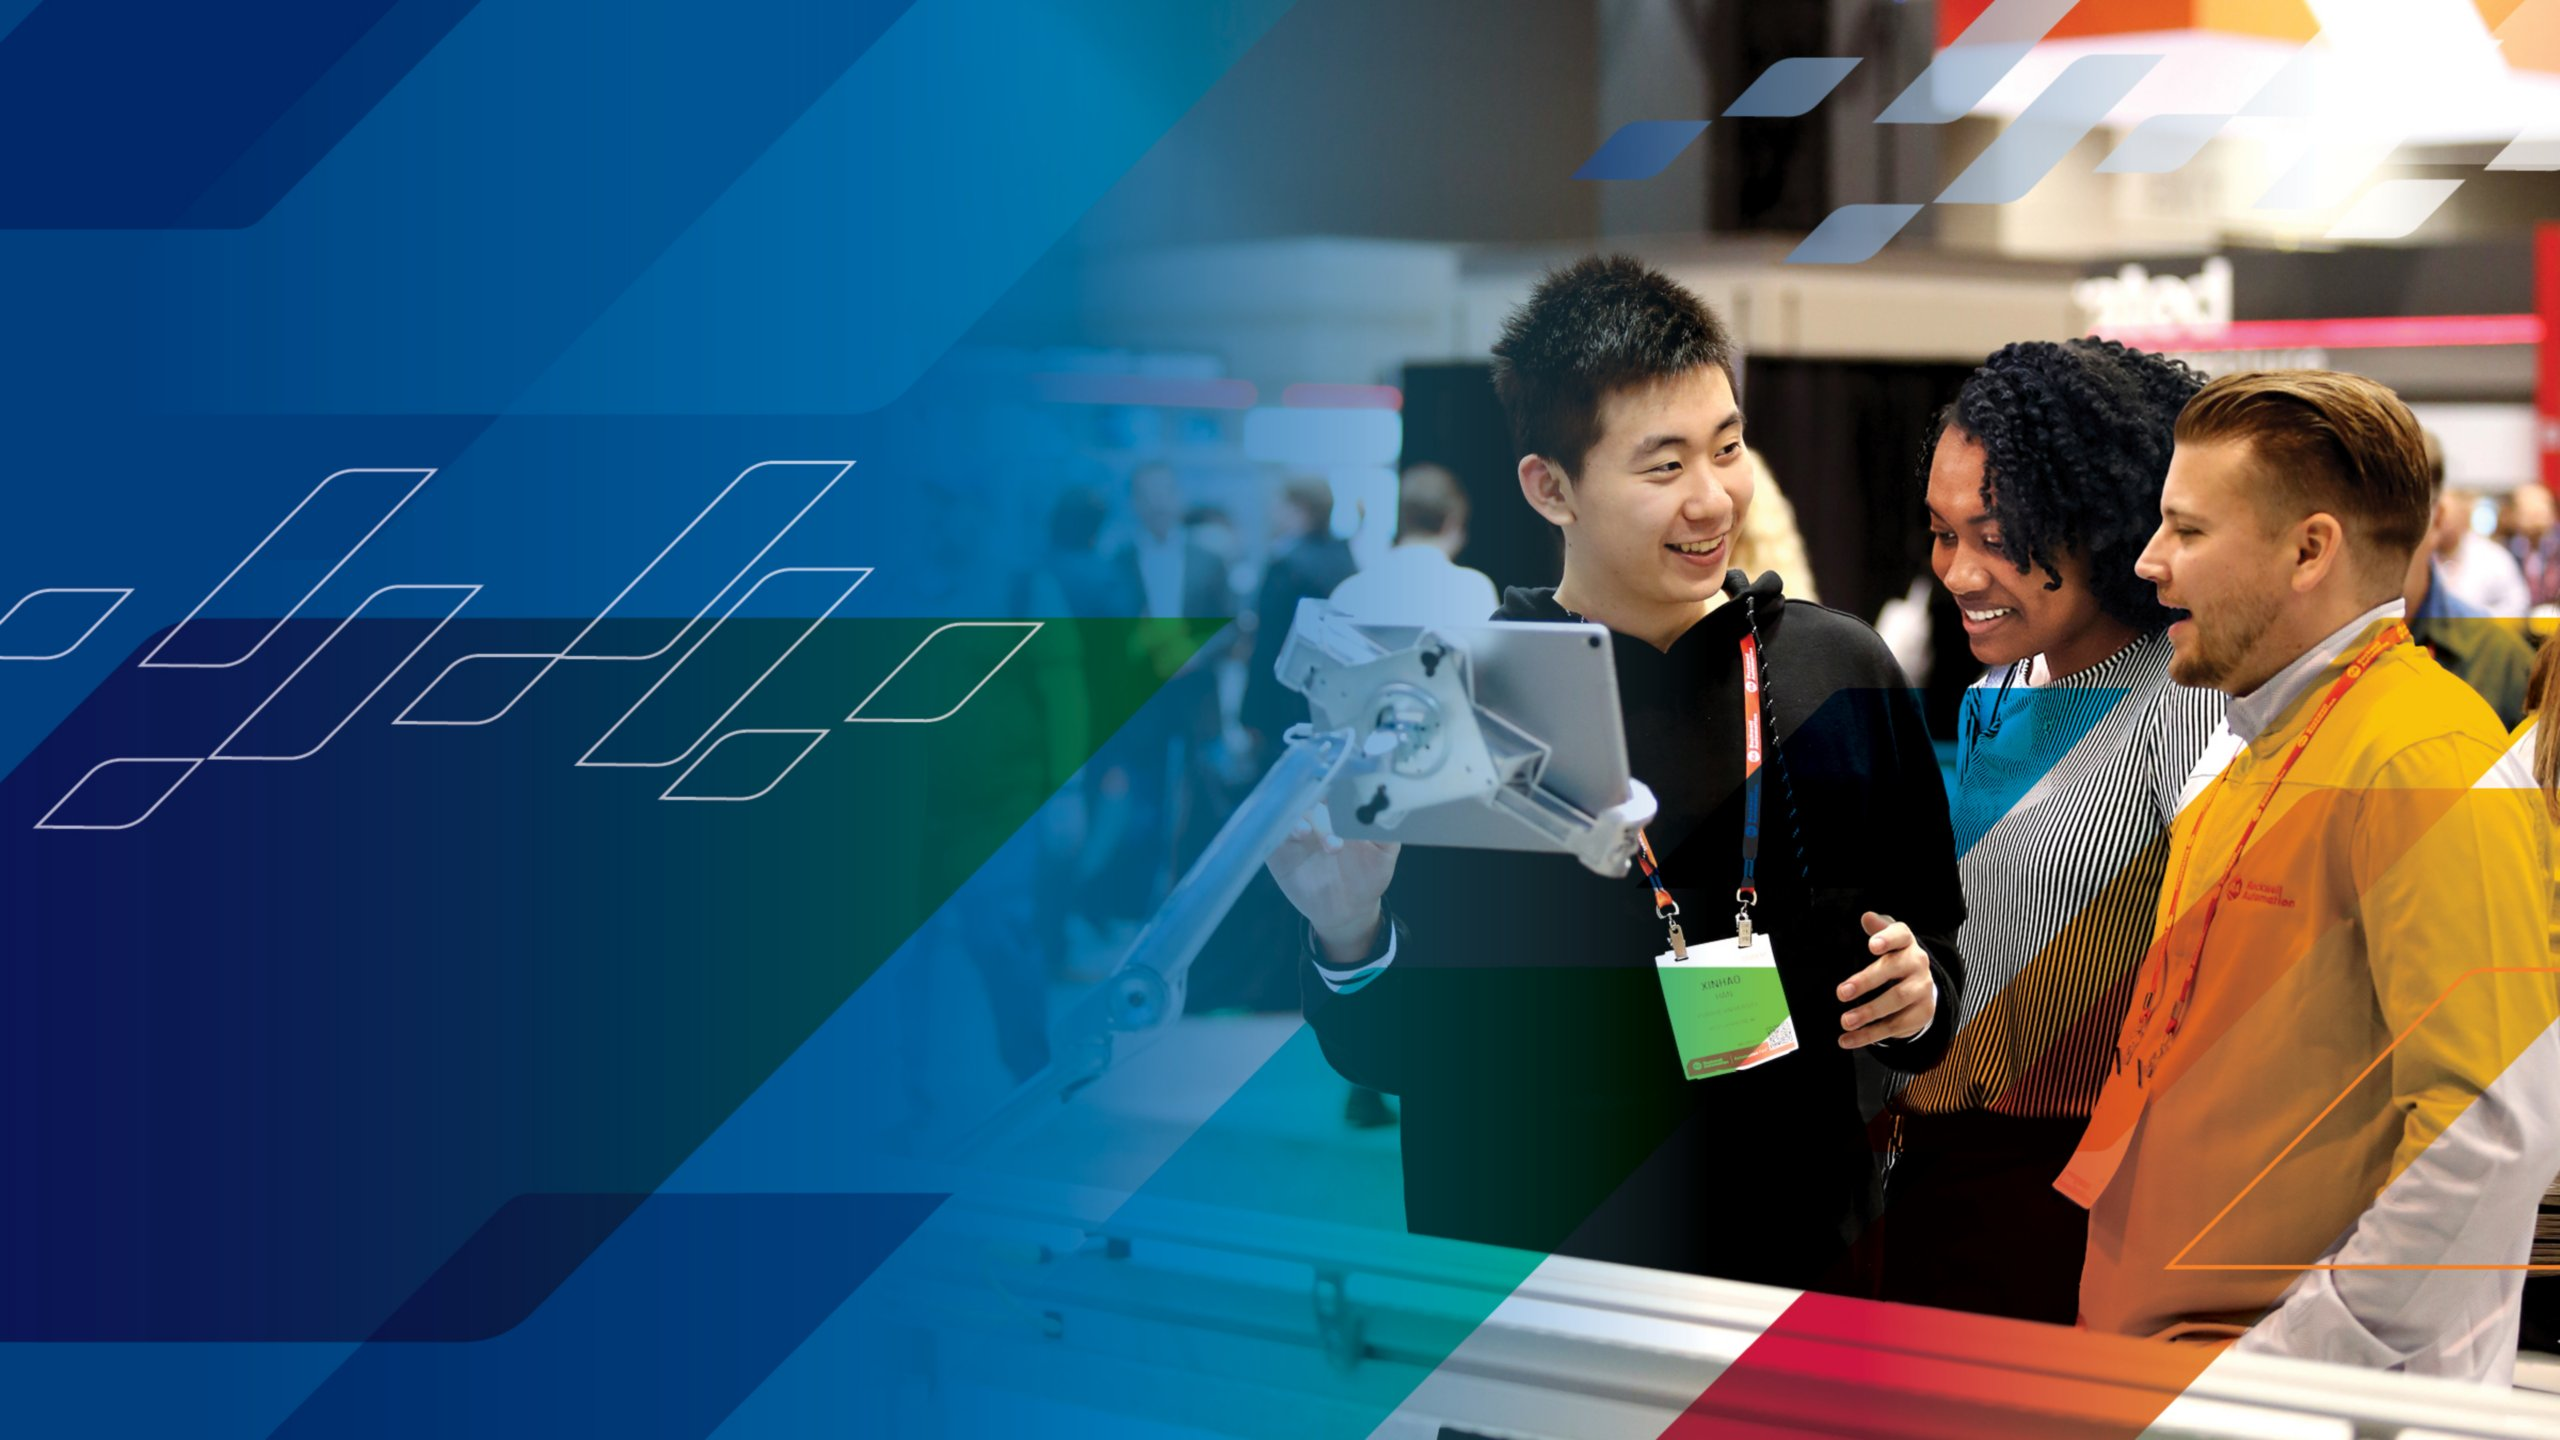 Join us for Automation Fair, November 10-11 in Houston, Texas